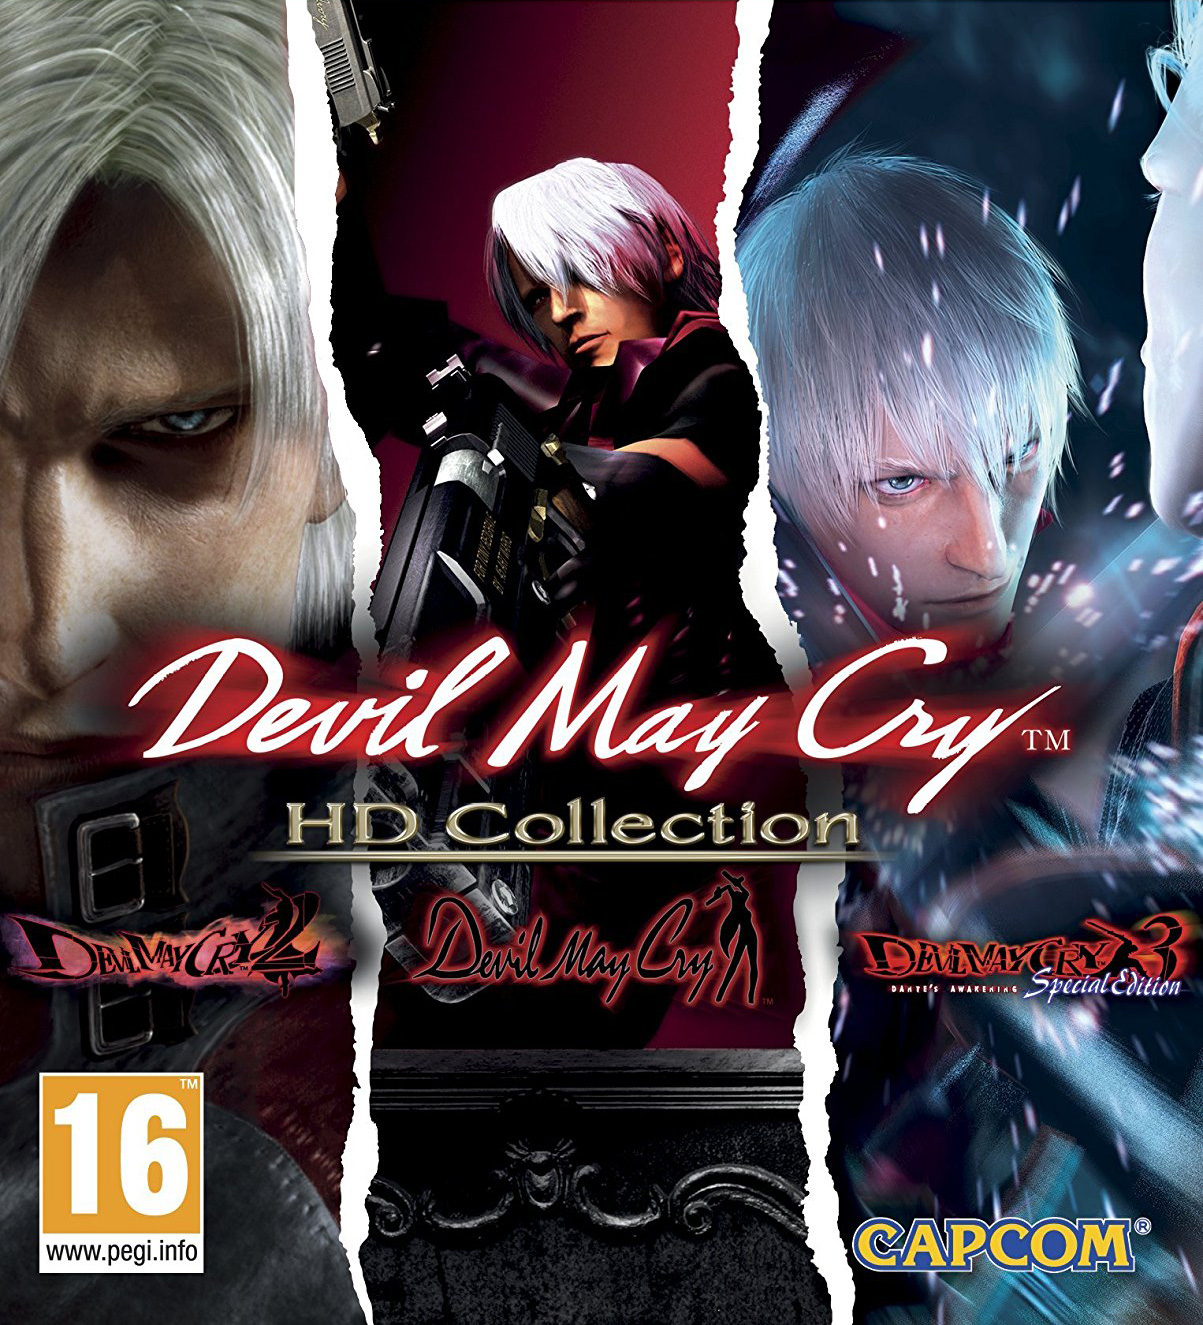 https://img5.downloadha.com/hosein/Game/March2018/13/Devil-May-Cry-HD-Collection-pc-cover-large.jpg